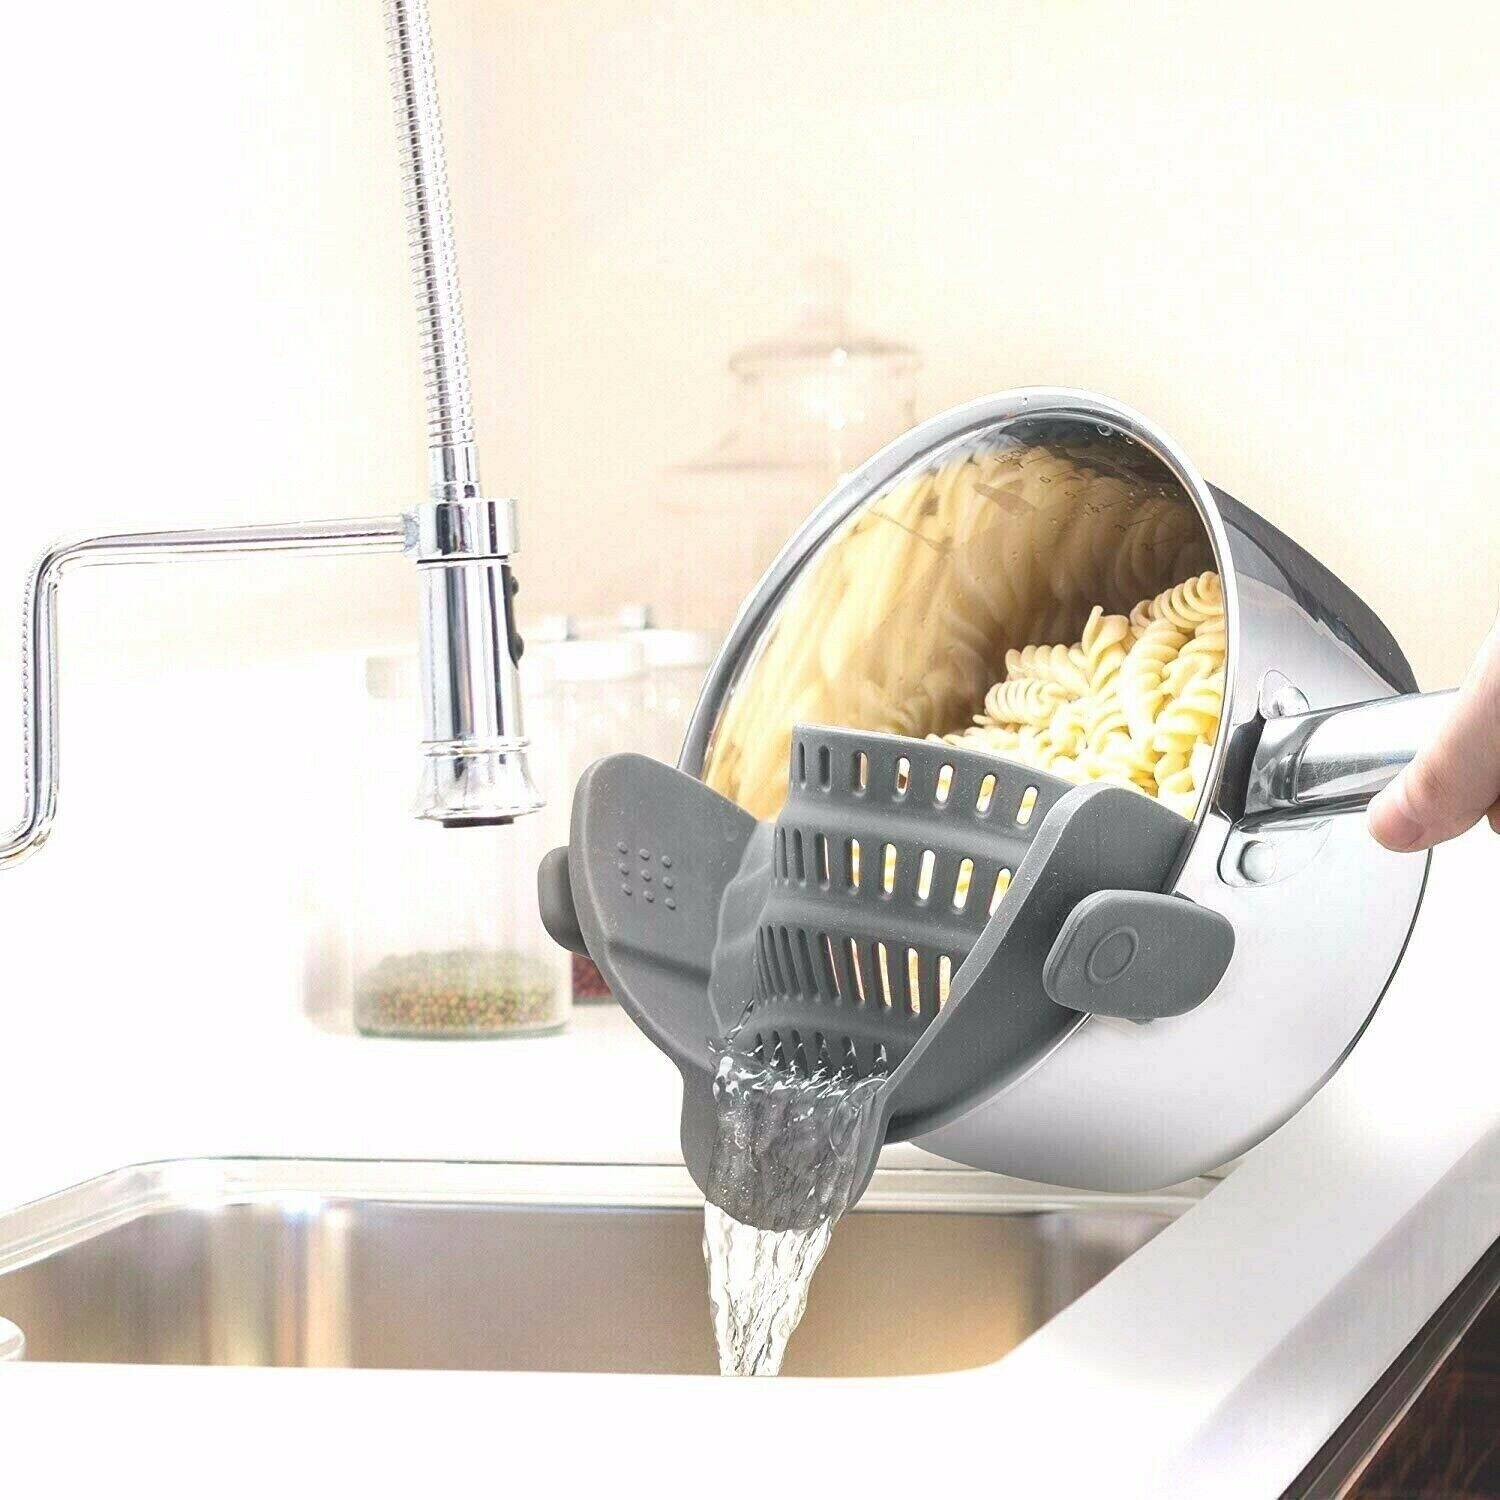 Product photo showing Snap N Strain clip on silicone strainer being used to strain cooked pasta